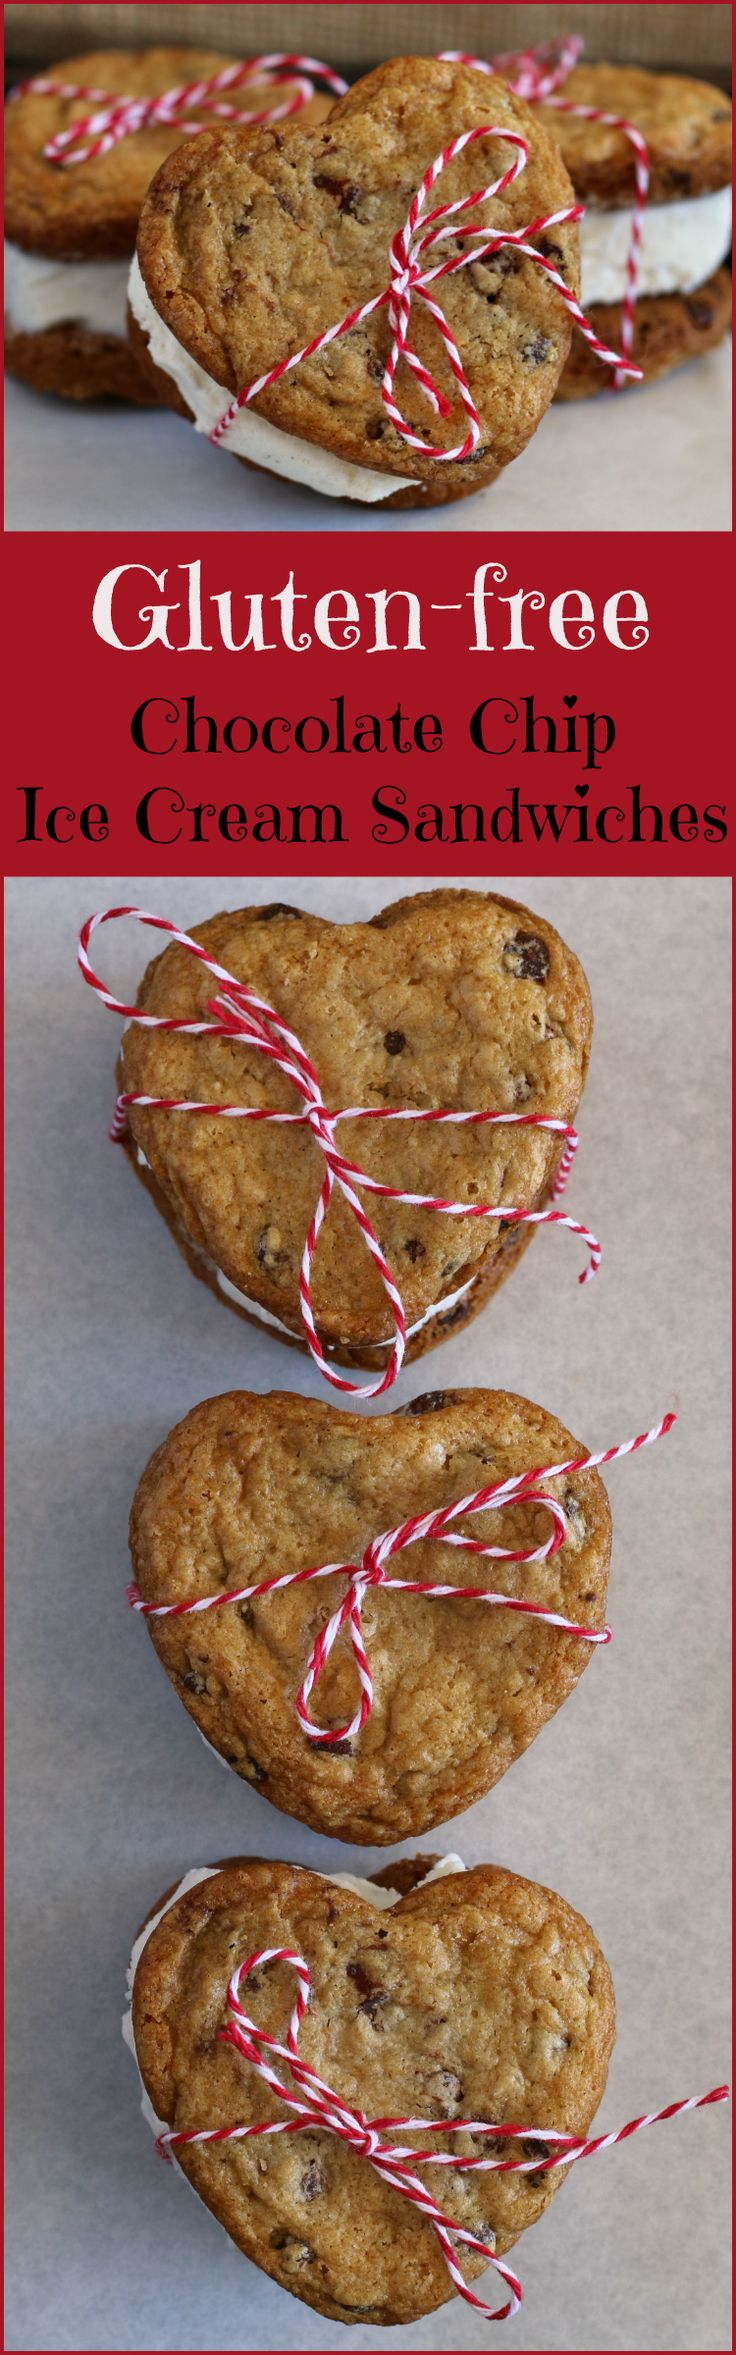 Gluten-free Chocolate Chip Ice Cream Sandwiches for Valentine's Day